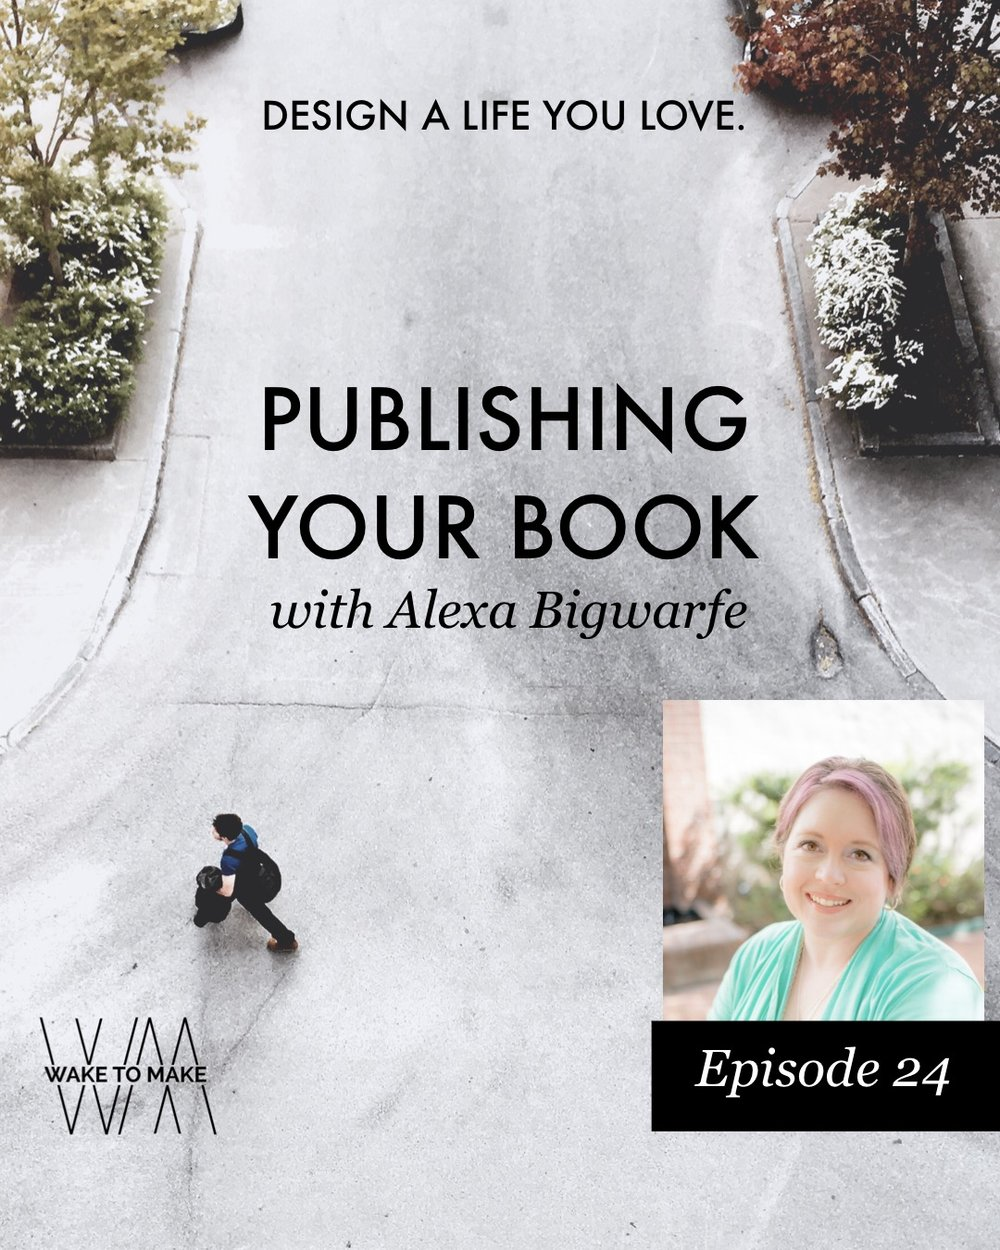 Episode 24 - Publishing Your Book with Alexa Bigwarfe